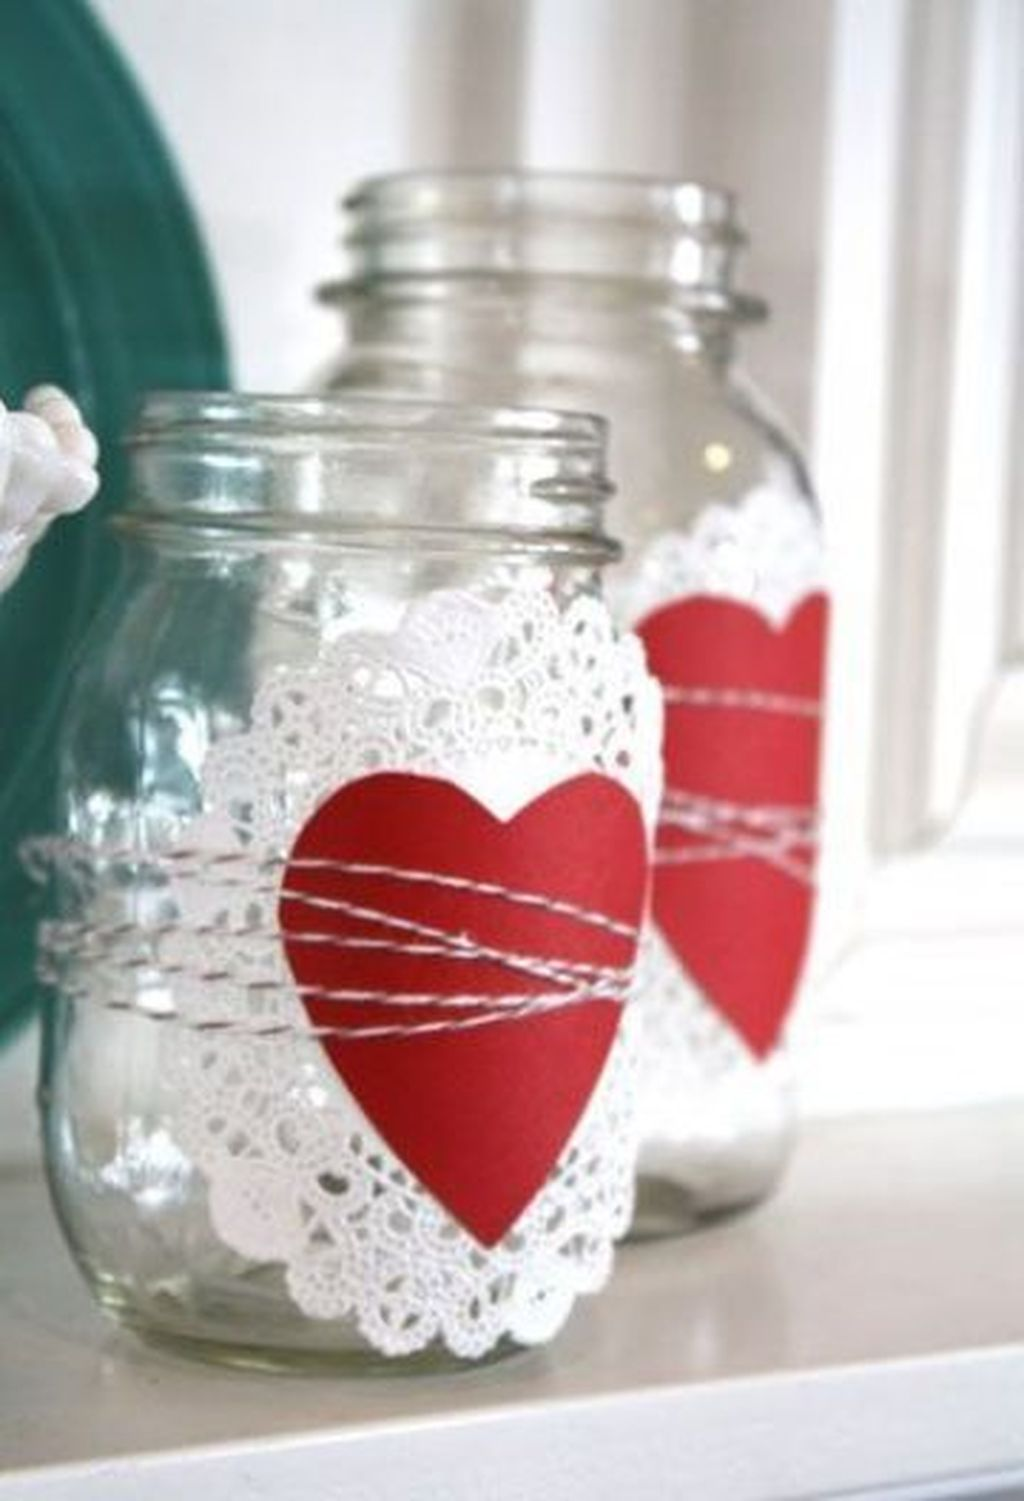 Inspiring Valentine Crafts Ideas For Your Home Decor 23